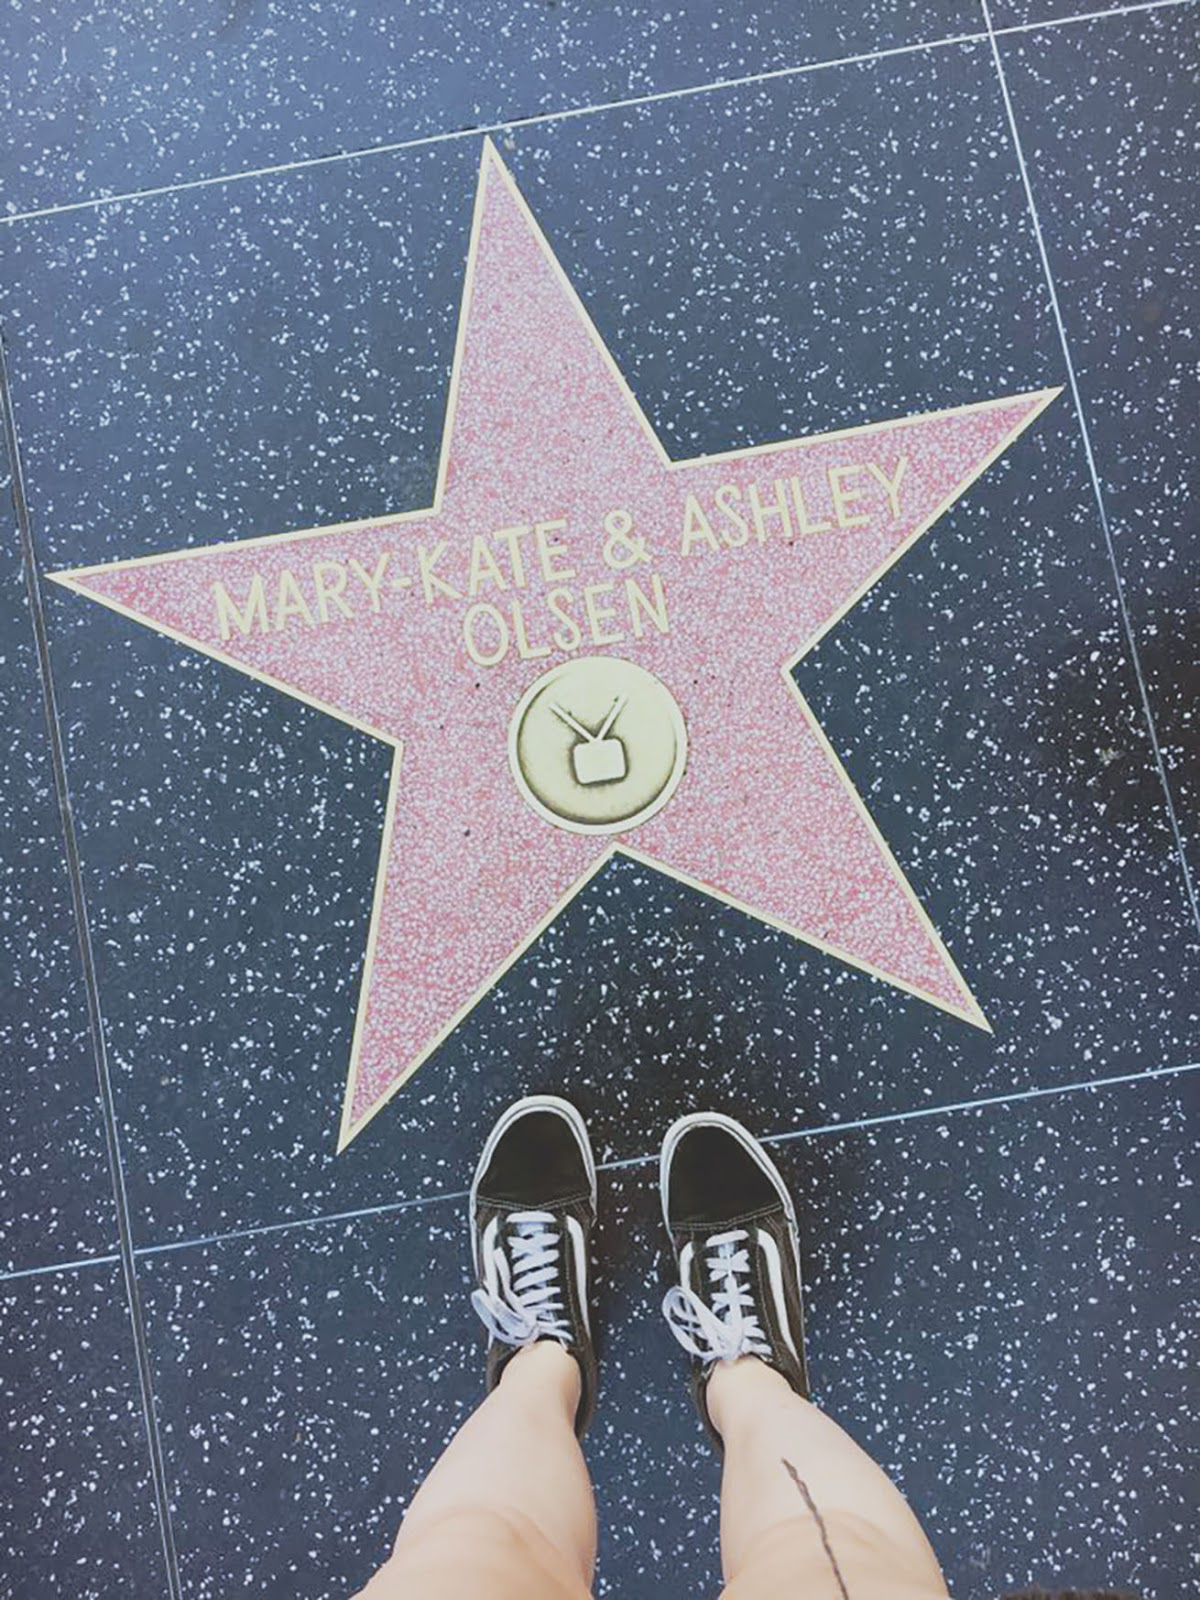 mary kate and ashley olsen star on hollywood walk of fame from travel blogger